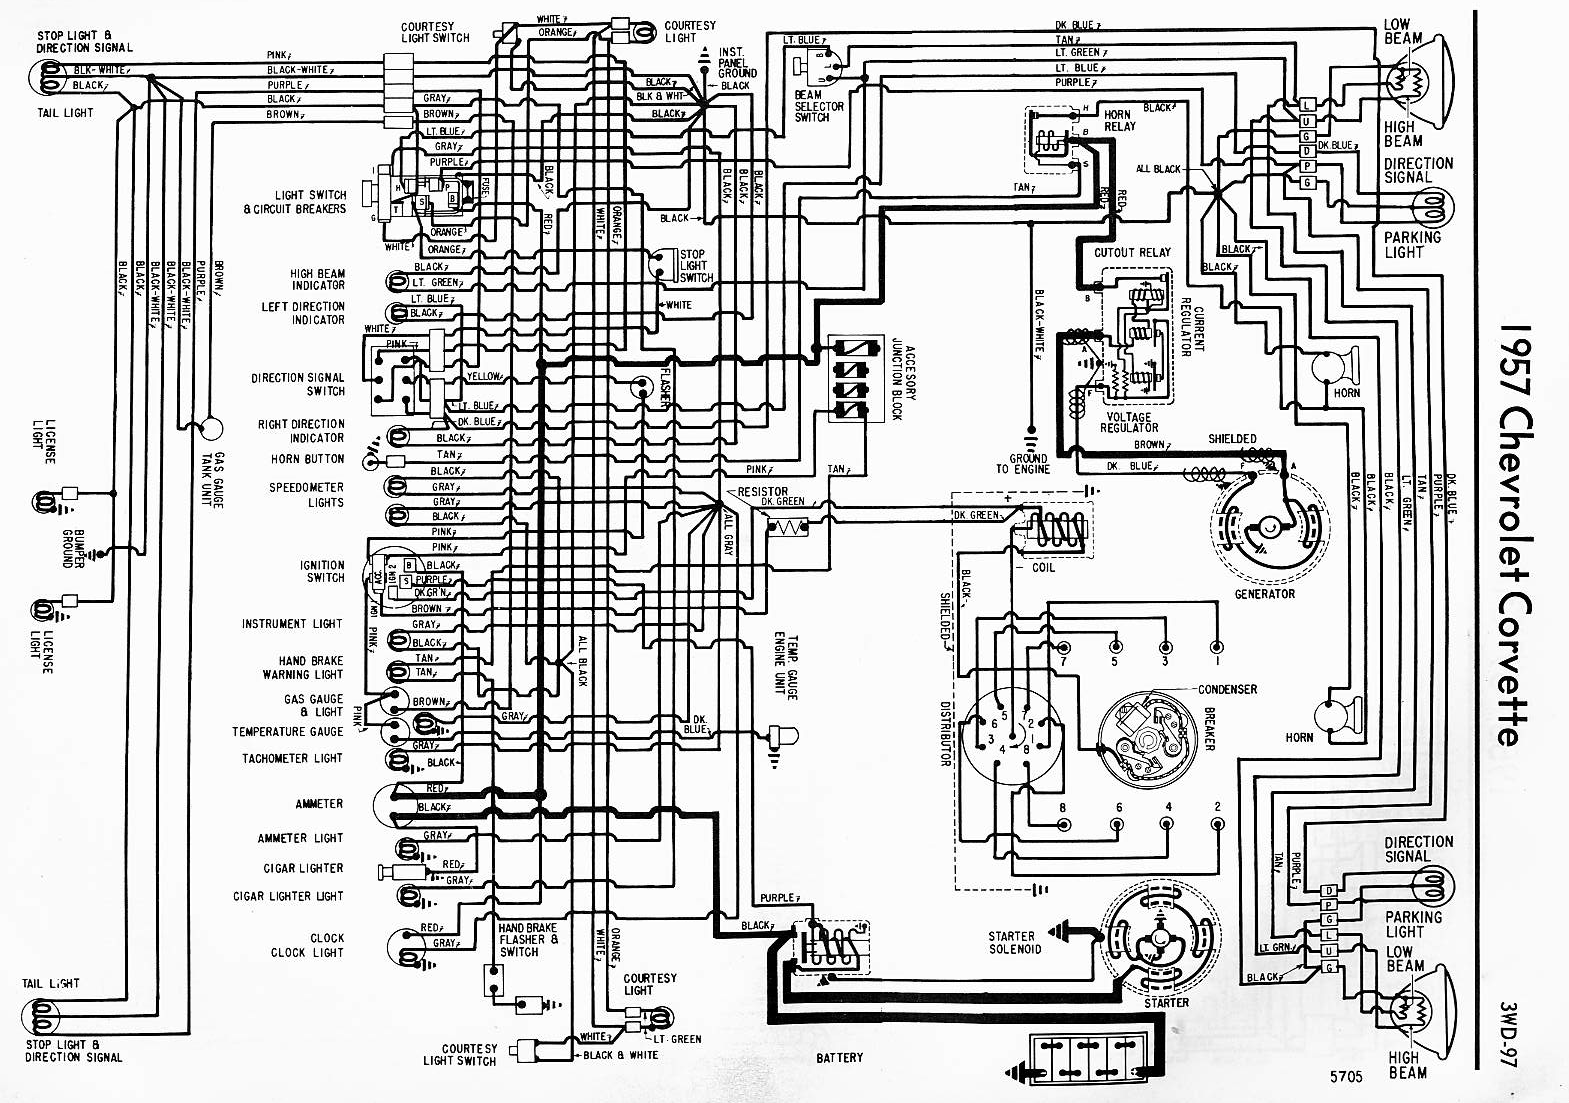 57 corvettte tracer schematic best one 1957 corvette wiring diagram willcox corvette, inc 1984 corvette wiring diagram schematic at crackthecode.co